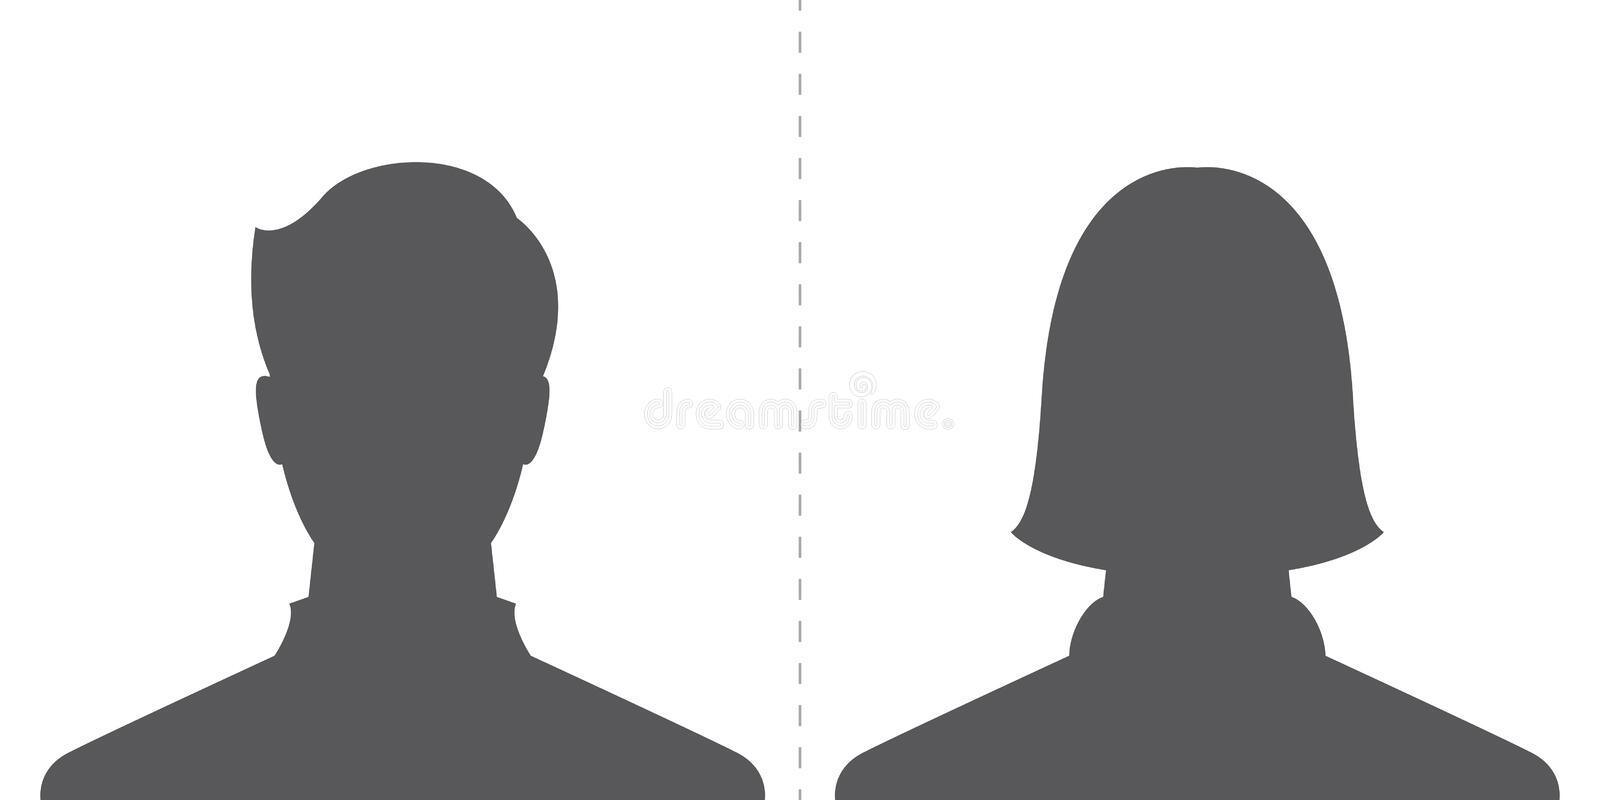 Male and female profile picture royalty free illustration